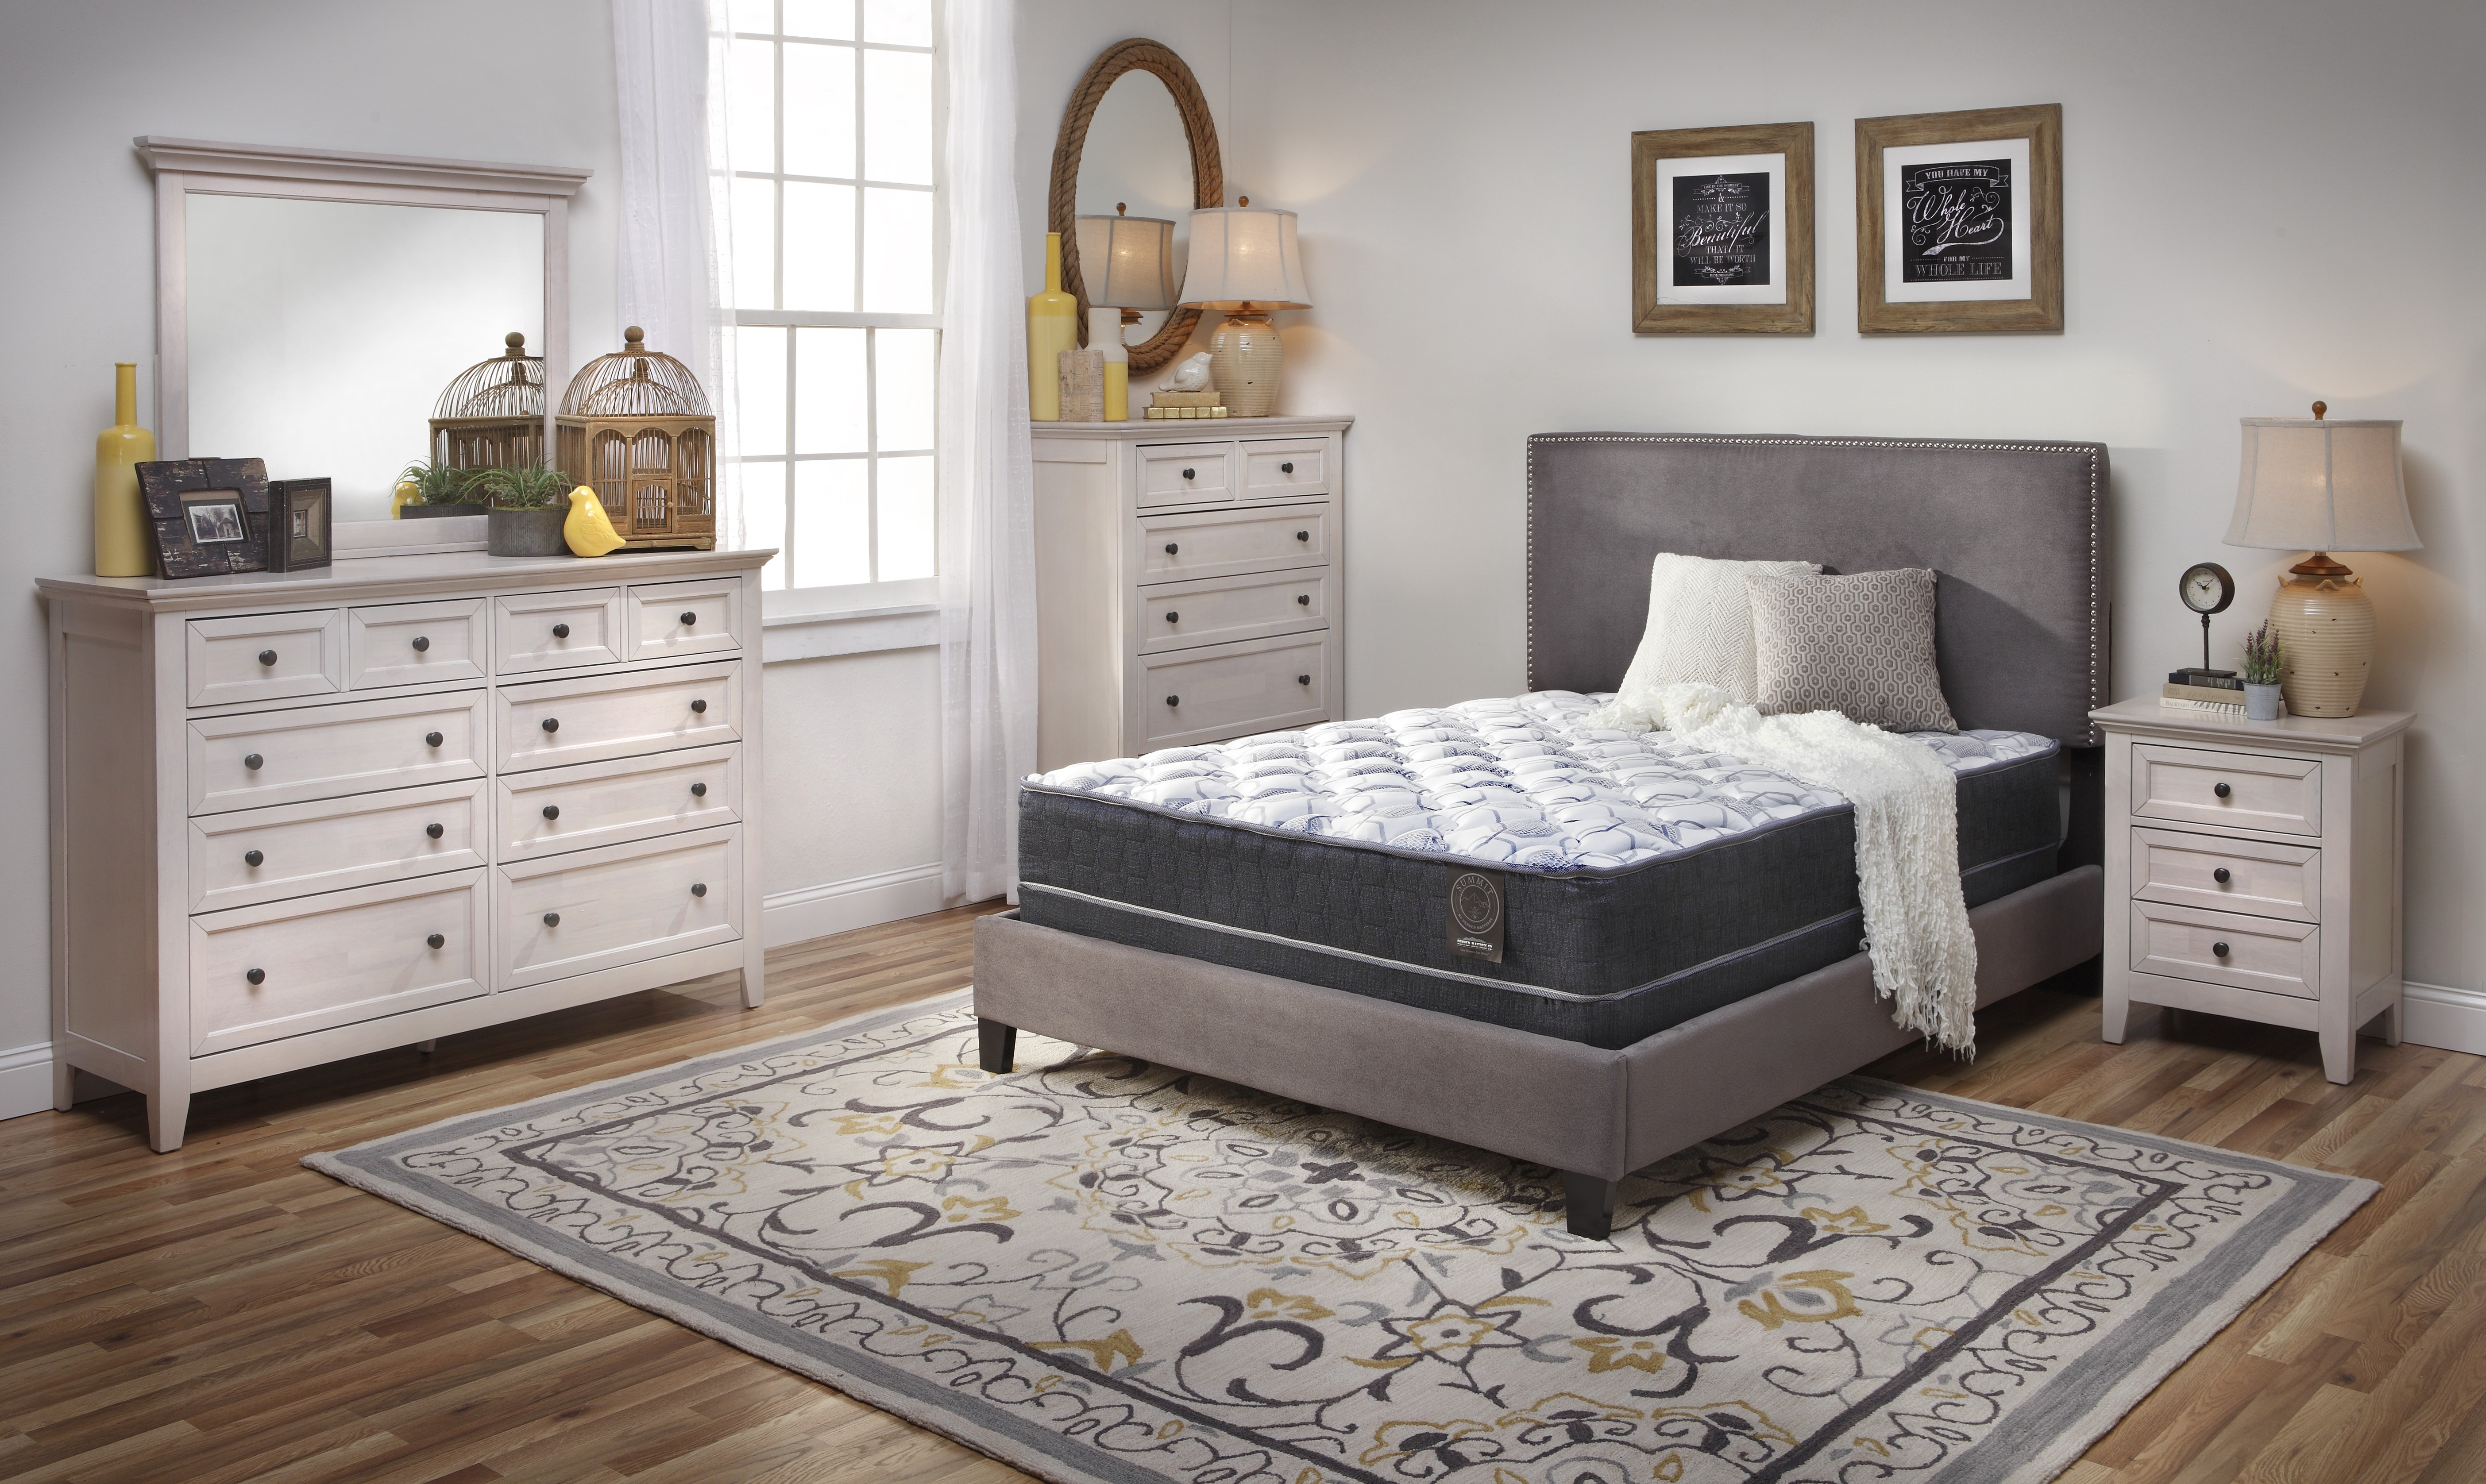 disappearing bedroom luxurius us queen choice denver bros furniture doctors giorgi piece mattress tracy showroom modern